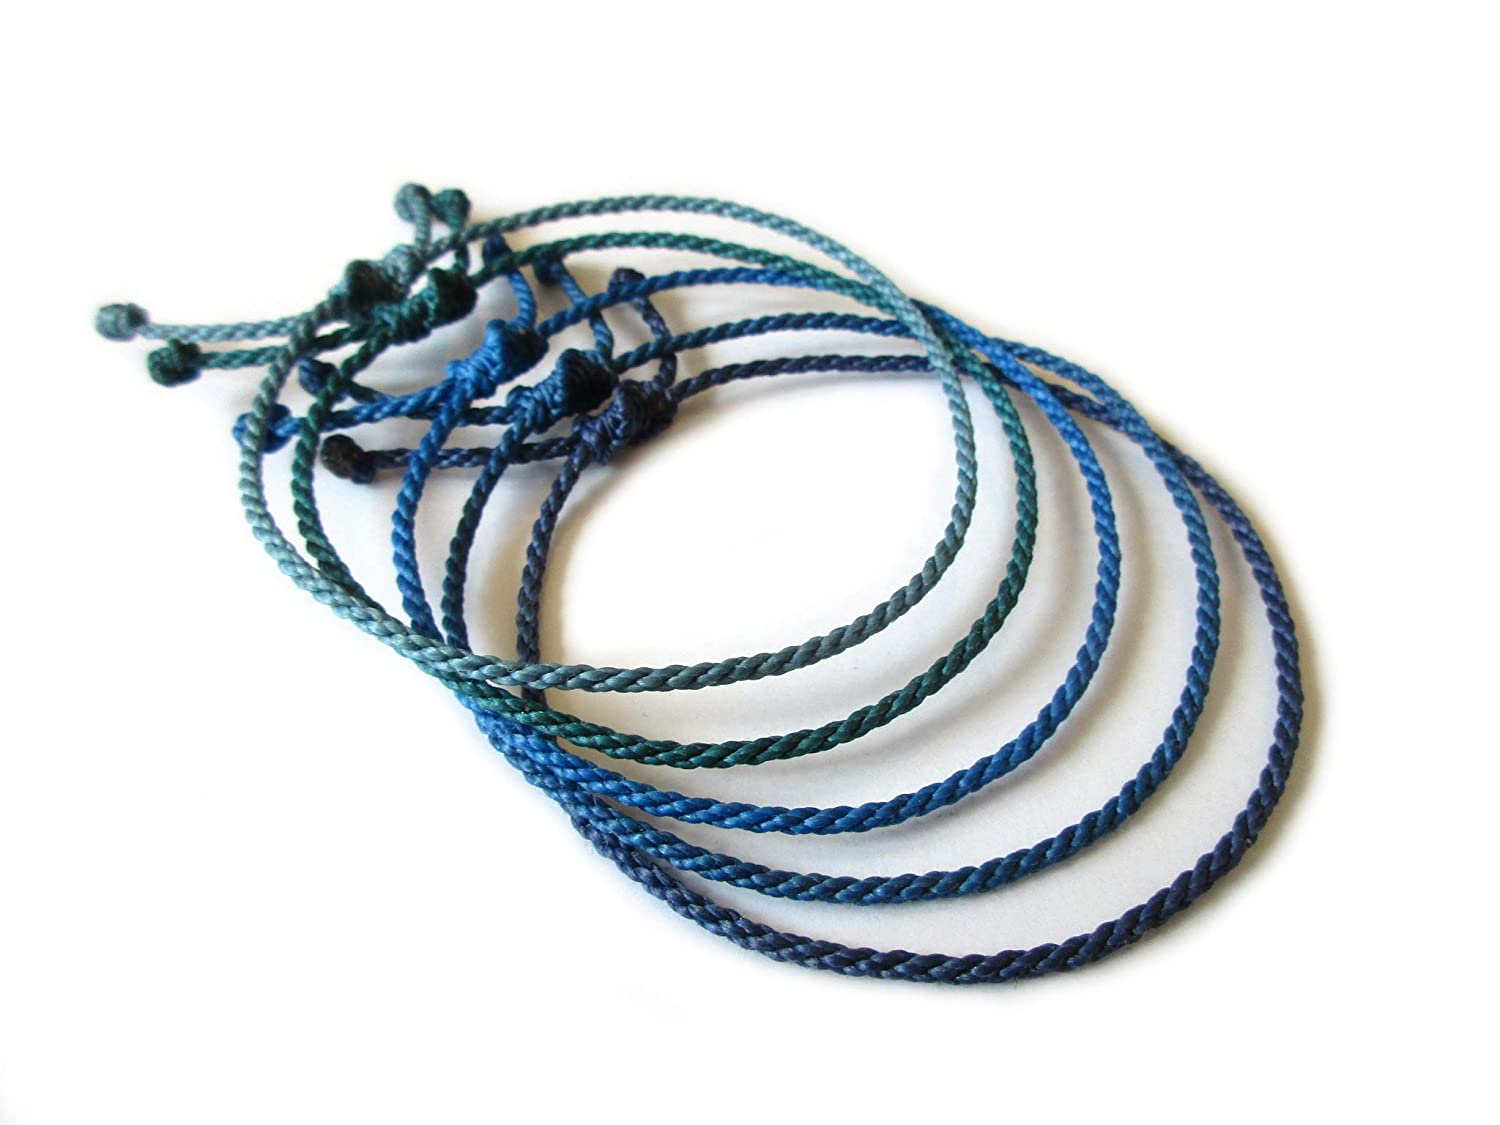 2 mm Thin Round Flexible Rope Wristband #18 Braided With Waxed Thread Adjustable Unisex Simple and Waterproof Pale Royal Blue Cord String Bracelet